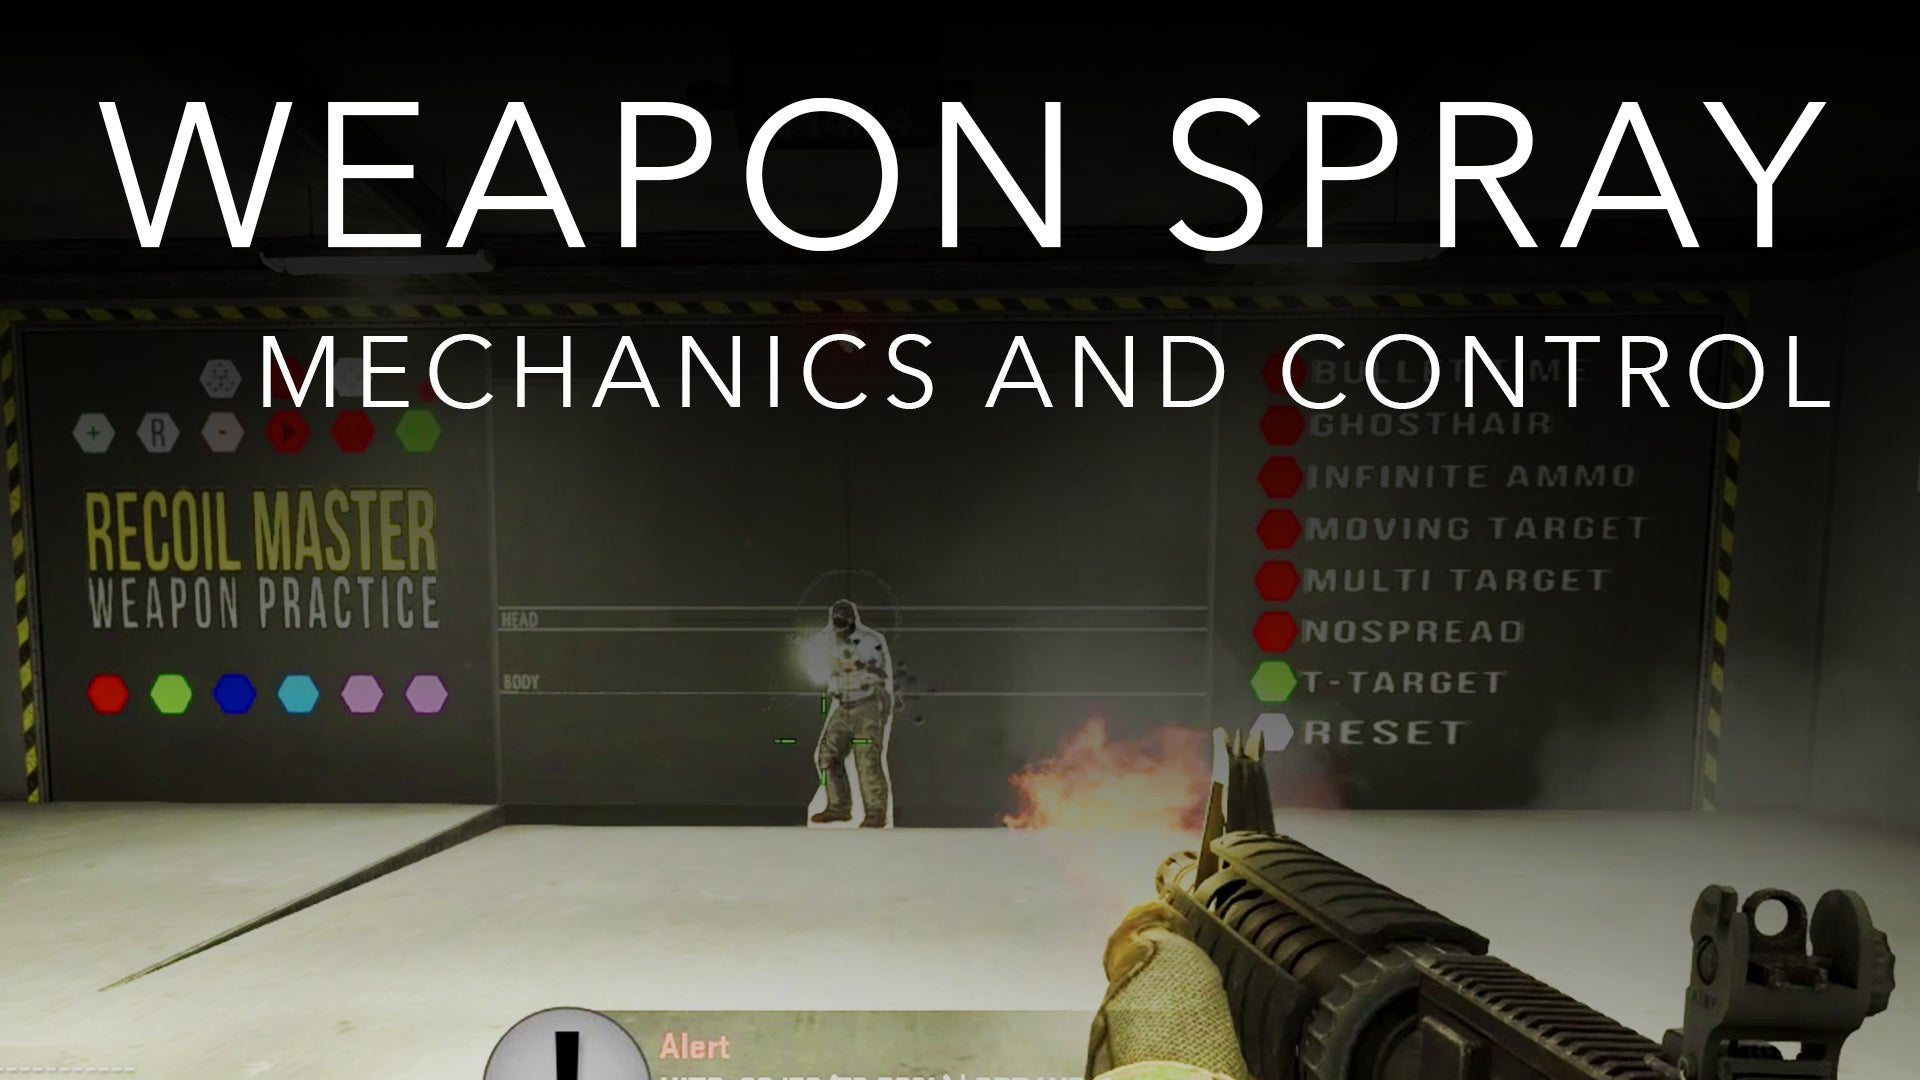 How to Control Weapon Spray